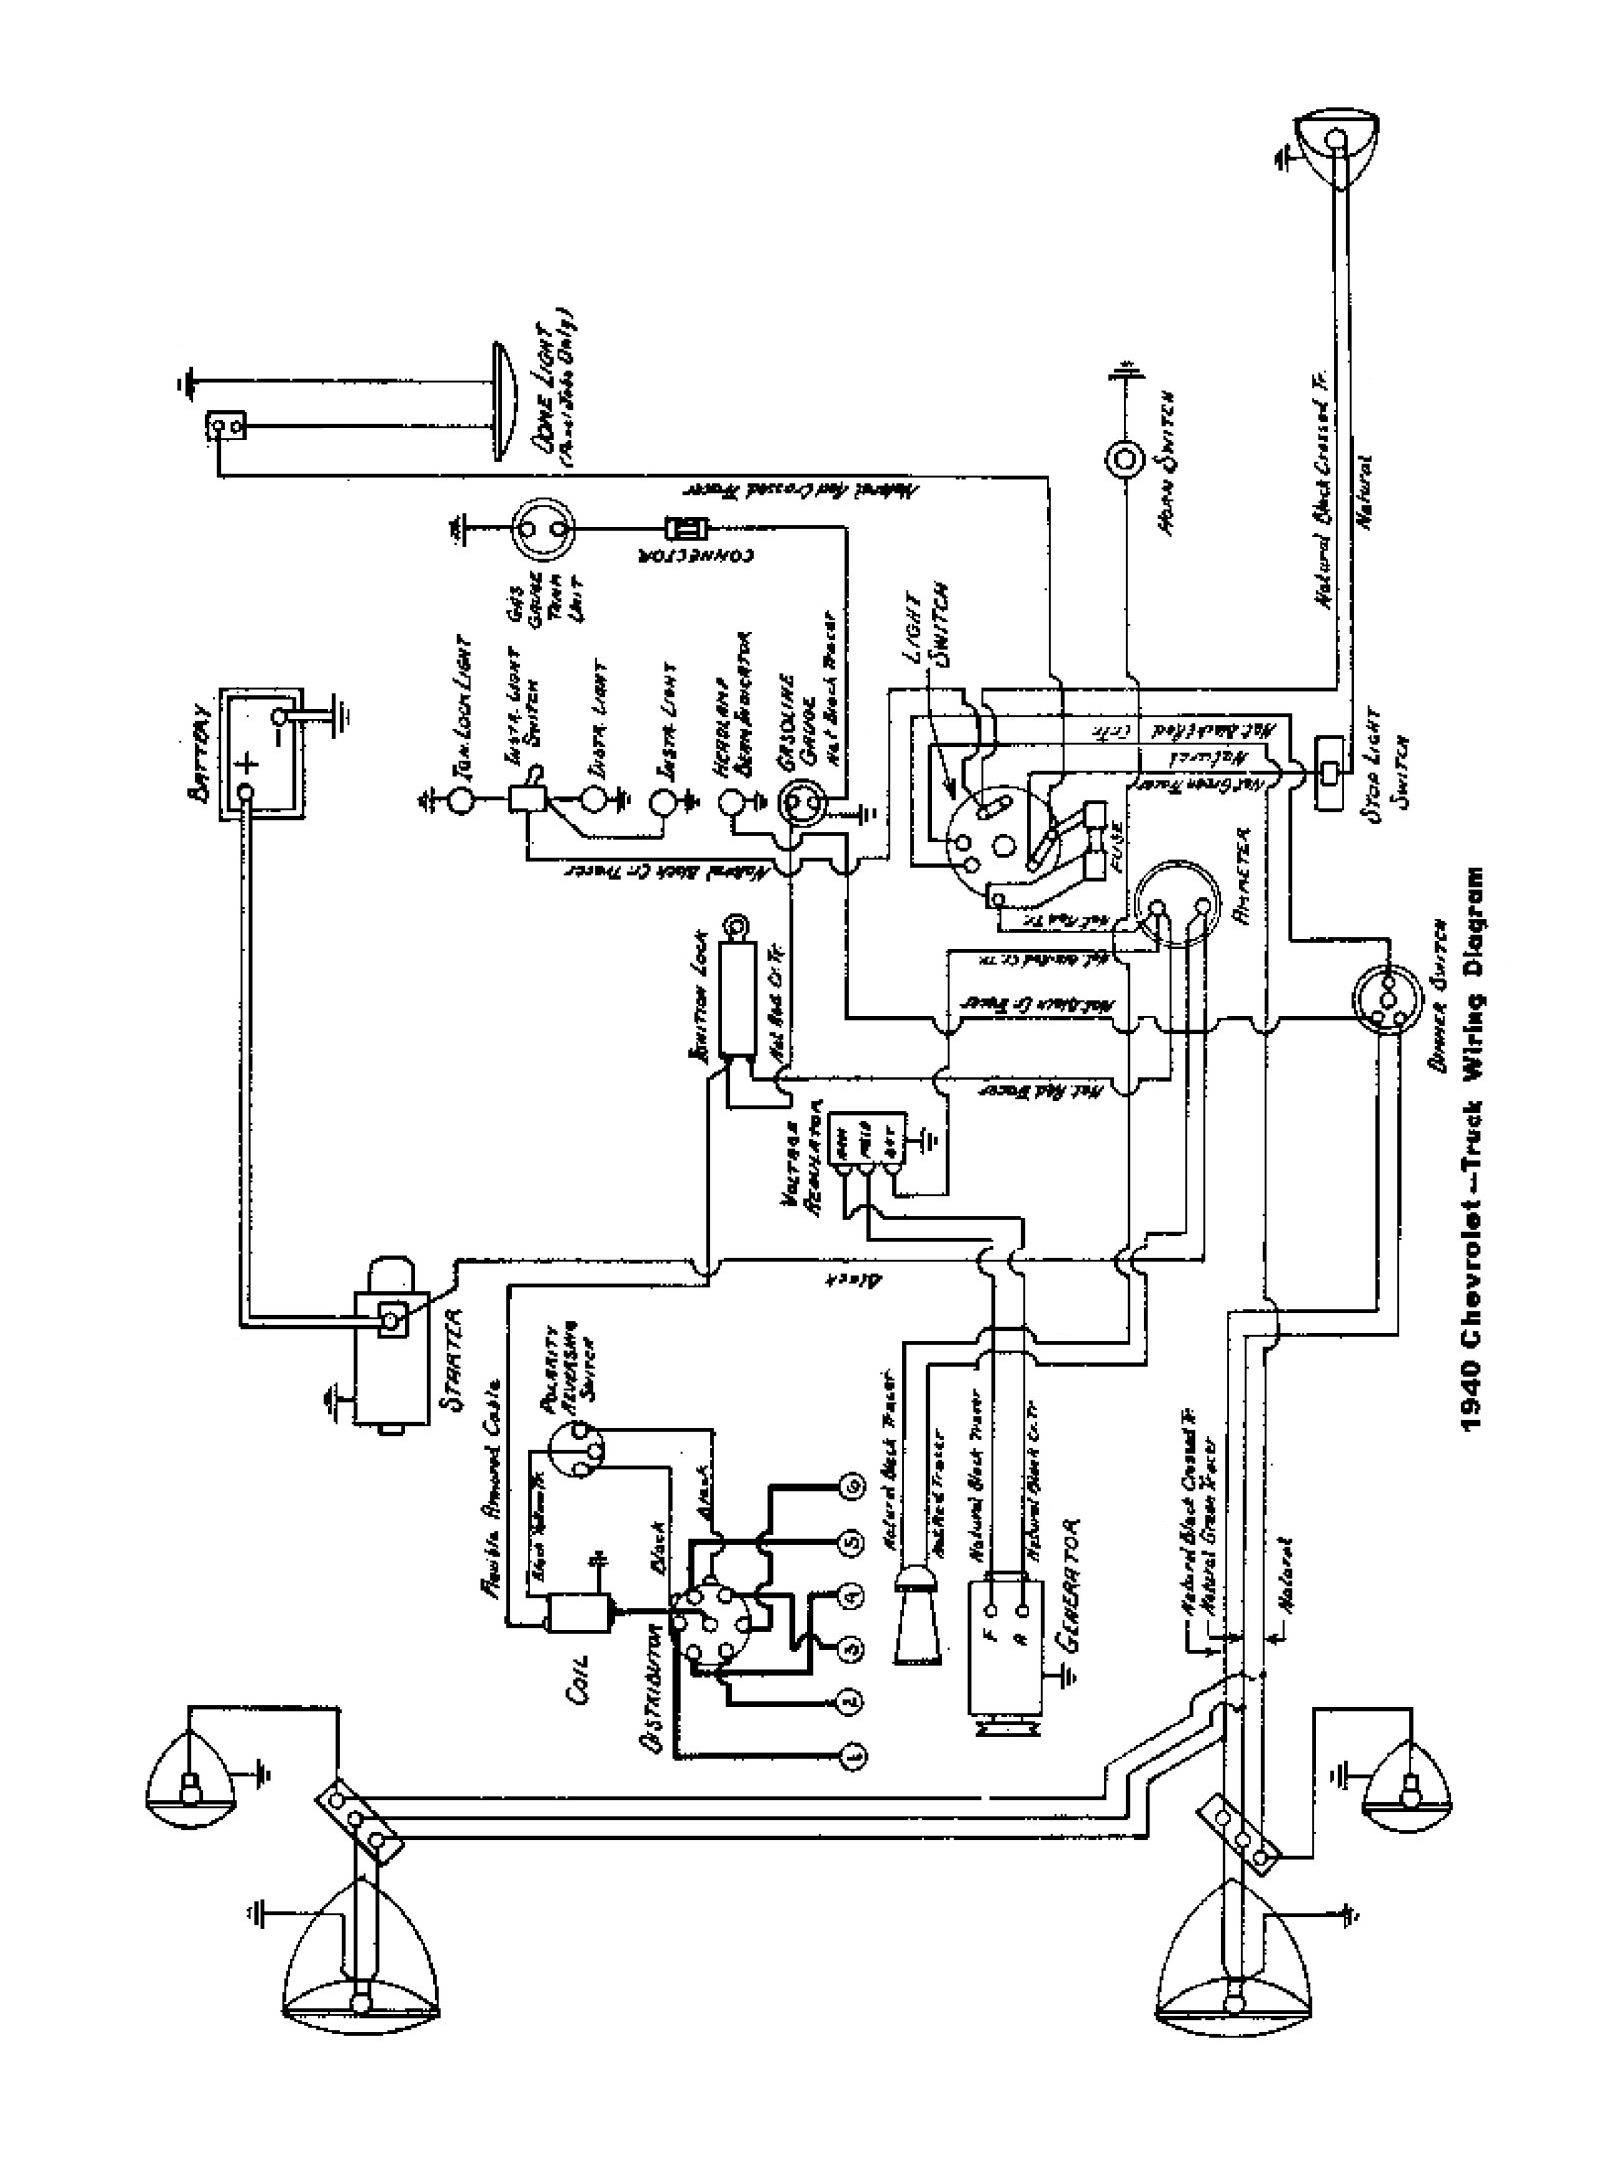 4 pole relay wiring diagram franklin submersible pump control box classic 1953 dodge truck harness pii organisedmum de best library rh 112 princestaash org